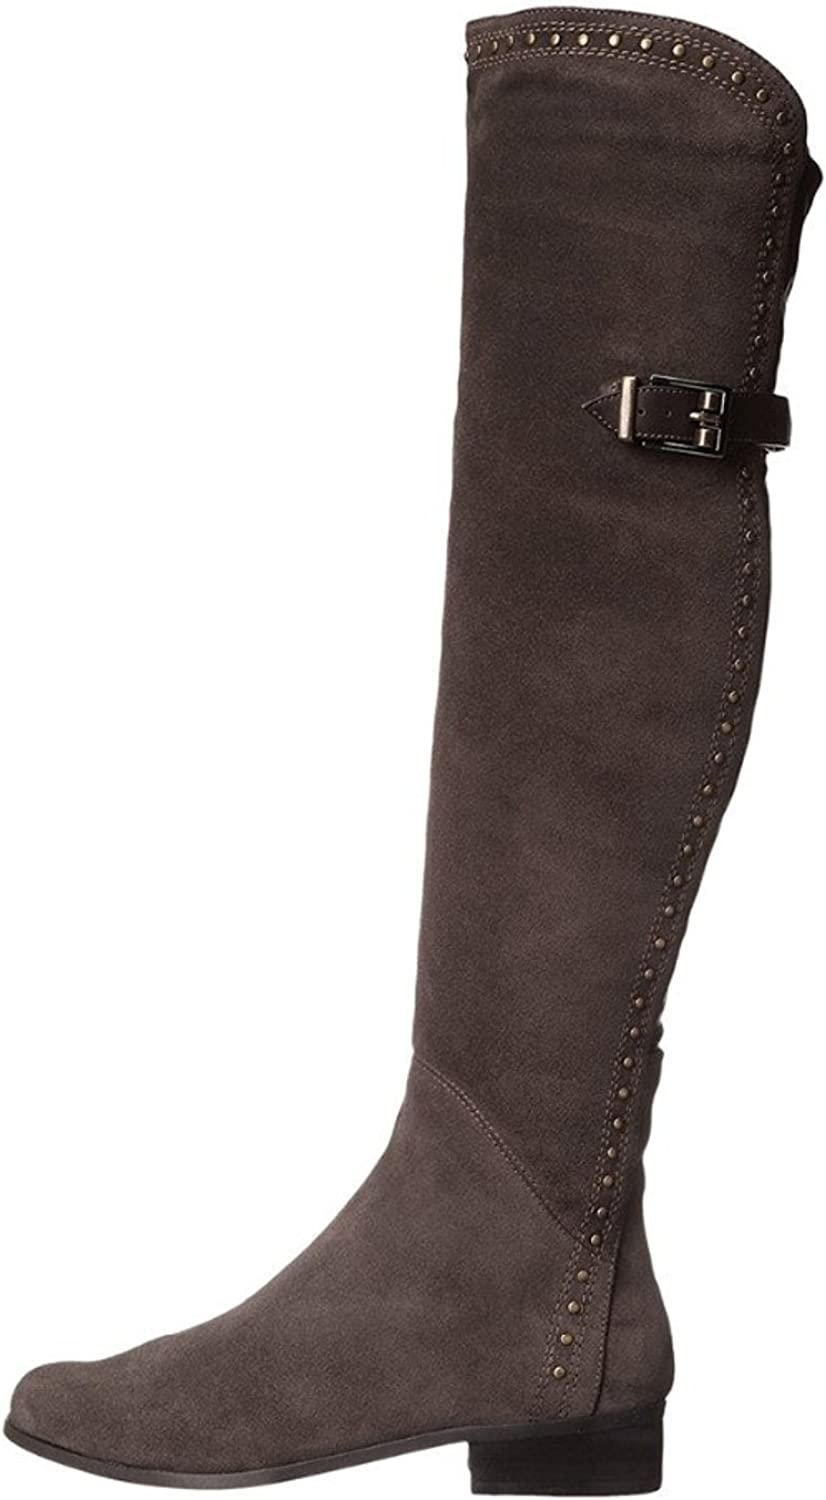 AIWEIYi Womens Suede Buckles Low Heel Knee High Women Boots Motorcycle Riding Boots Brown